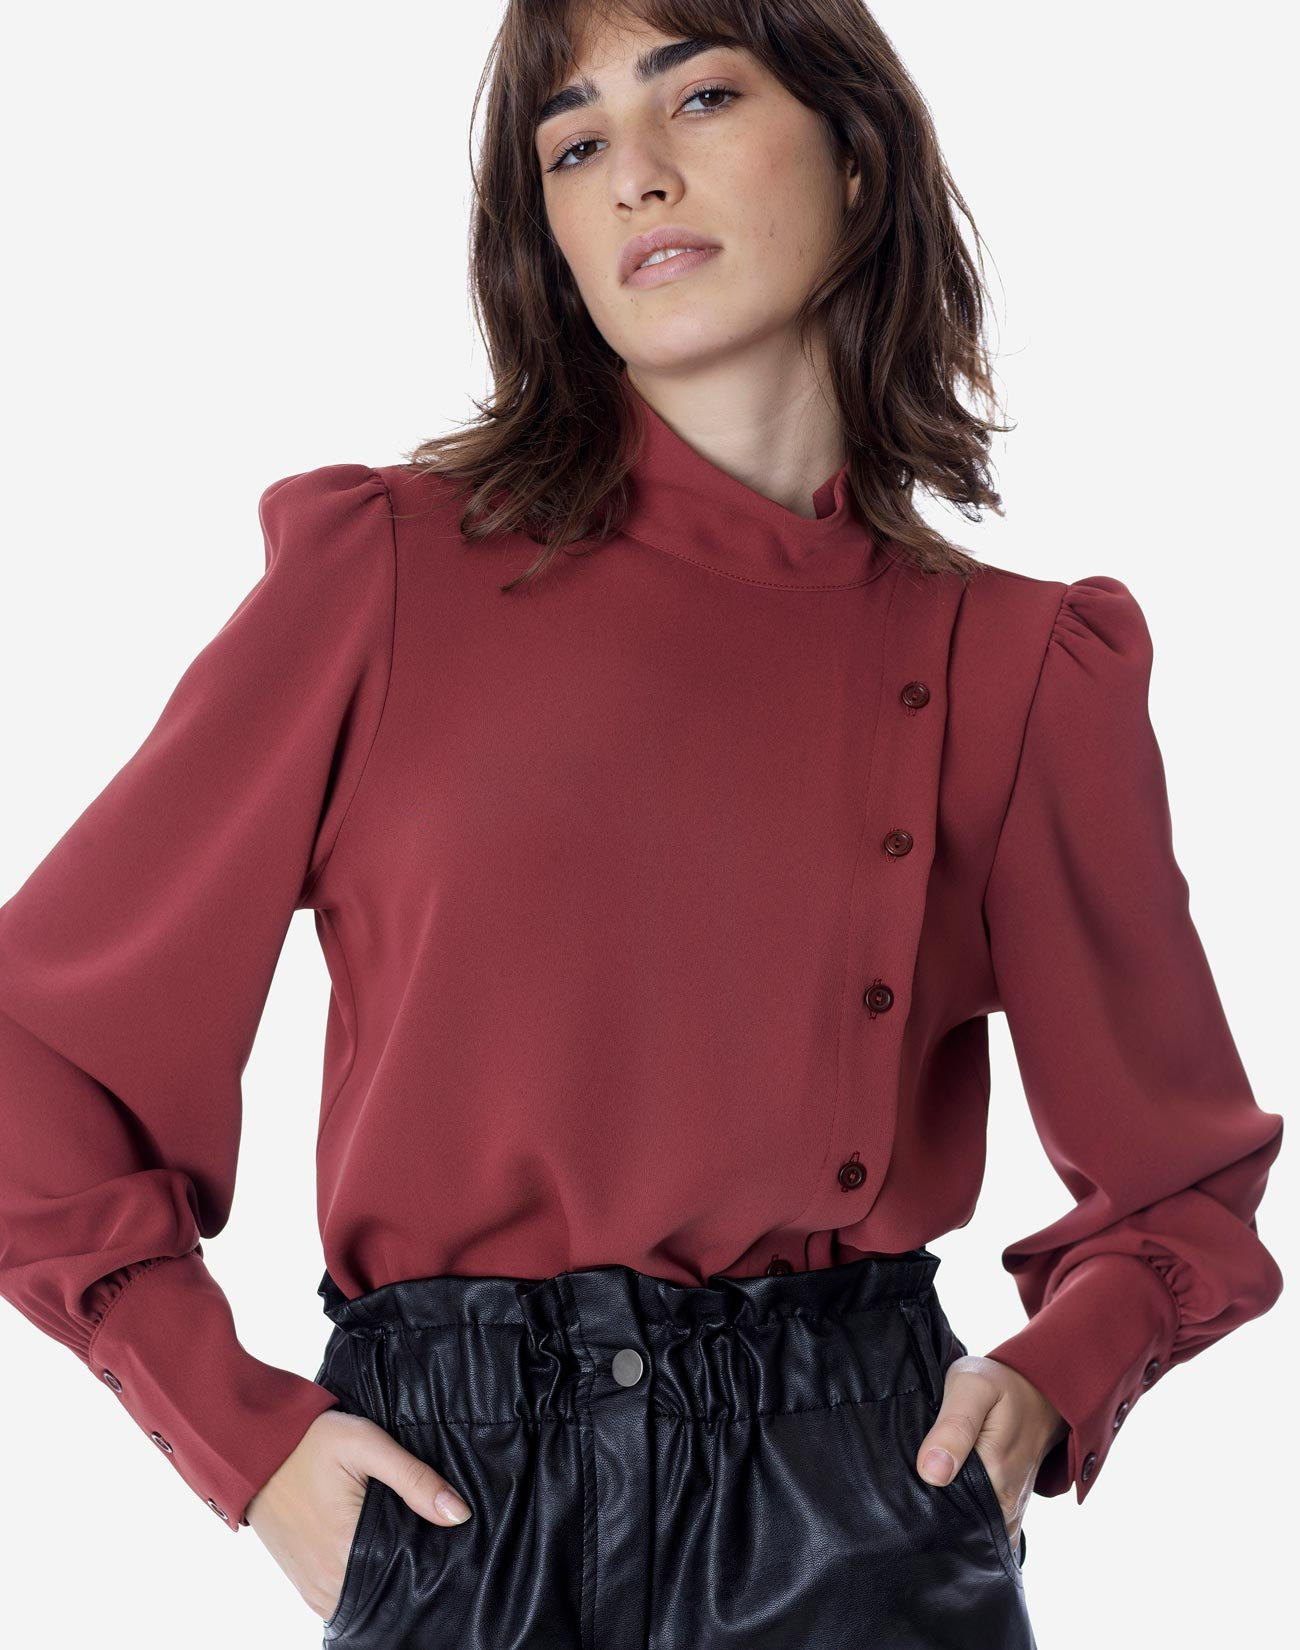 Blouse with buttons